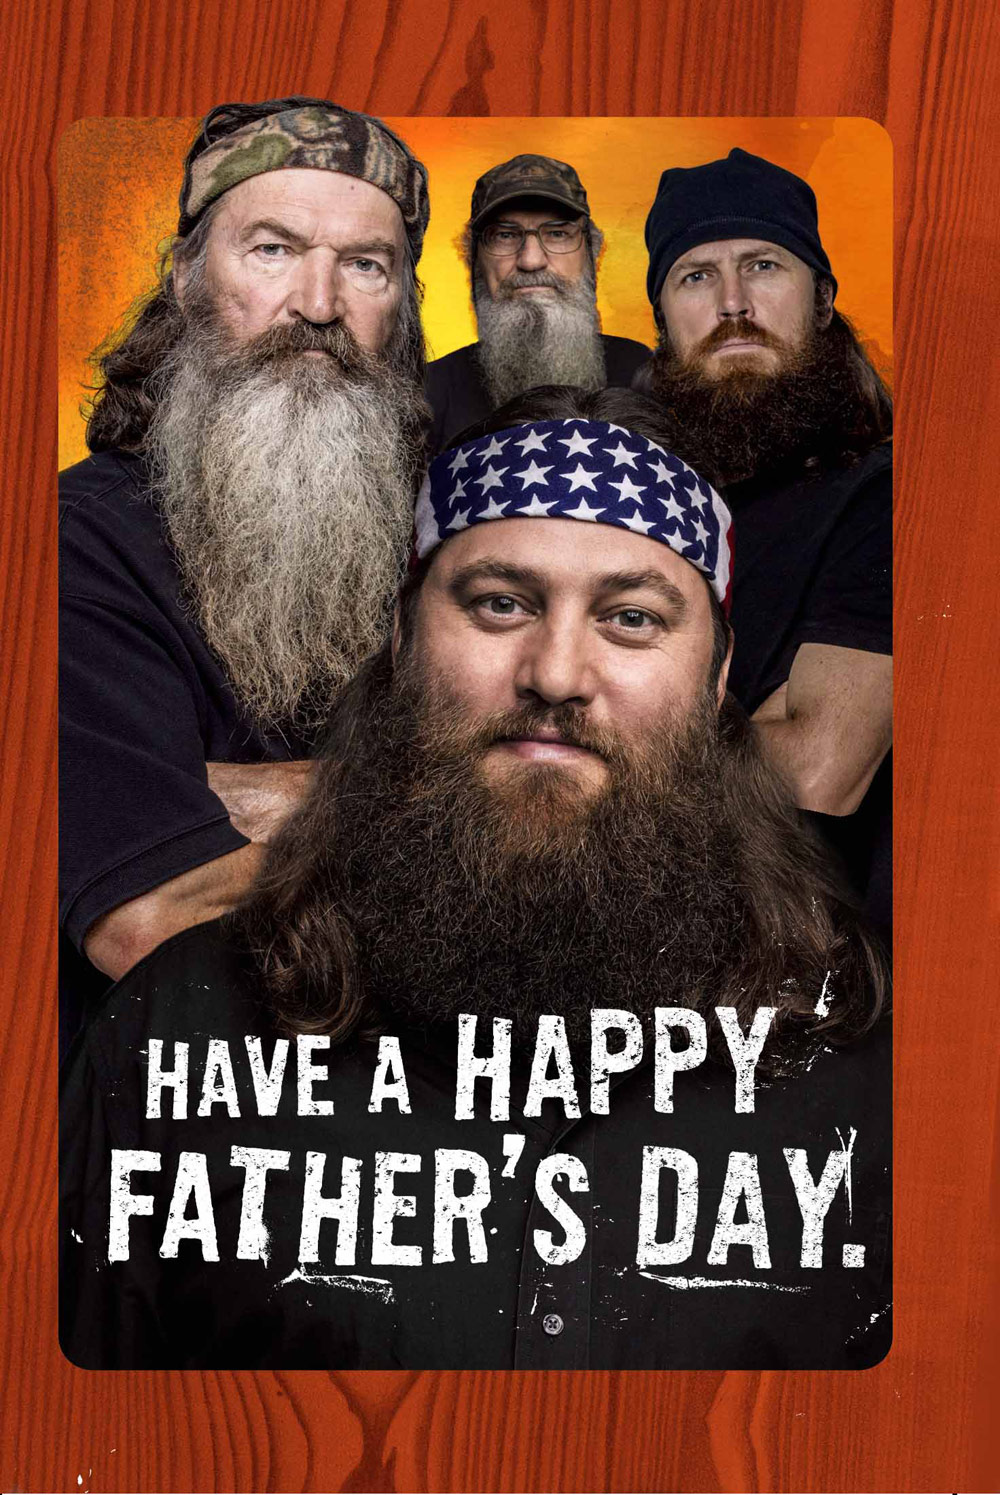 PHOTOS Hallmark releases line of Duck Dynasty Father's Day cards